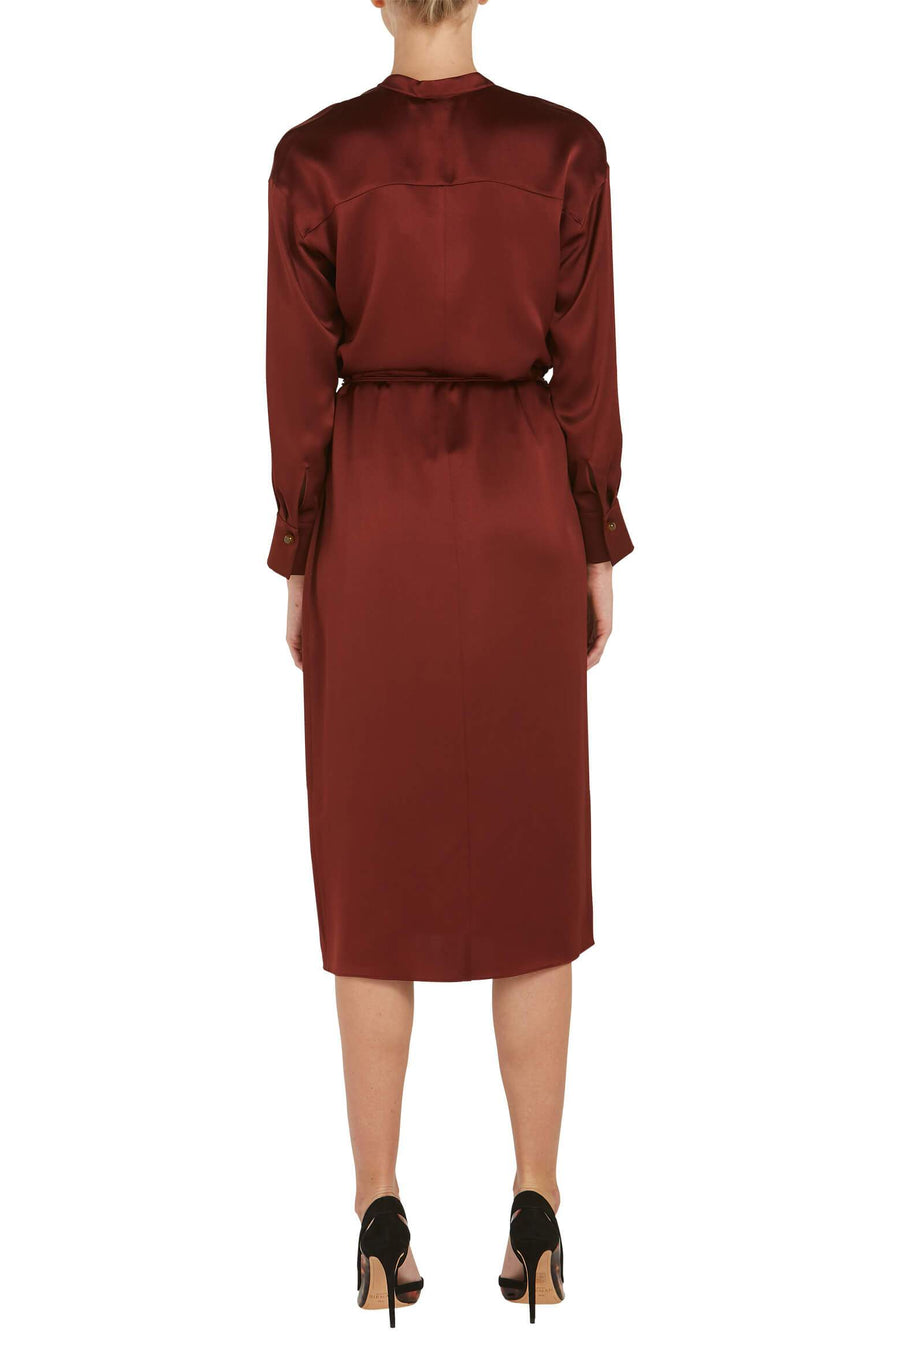 VINCE. L/S Wrap Dress in Dark Rosewood from The New Trend